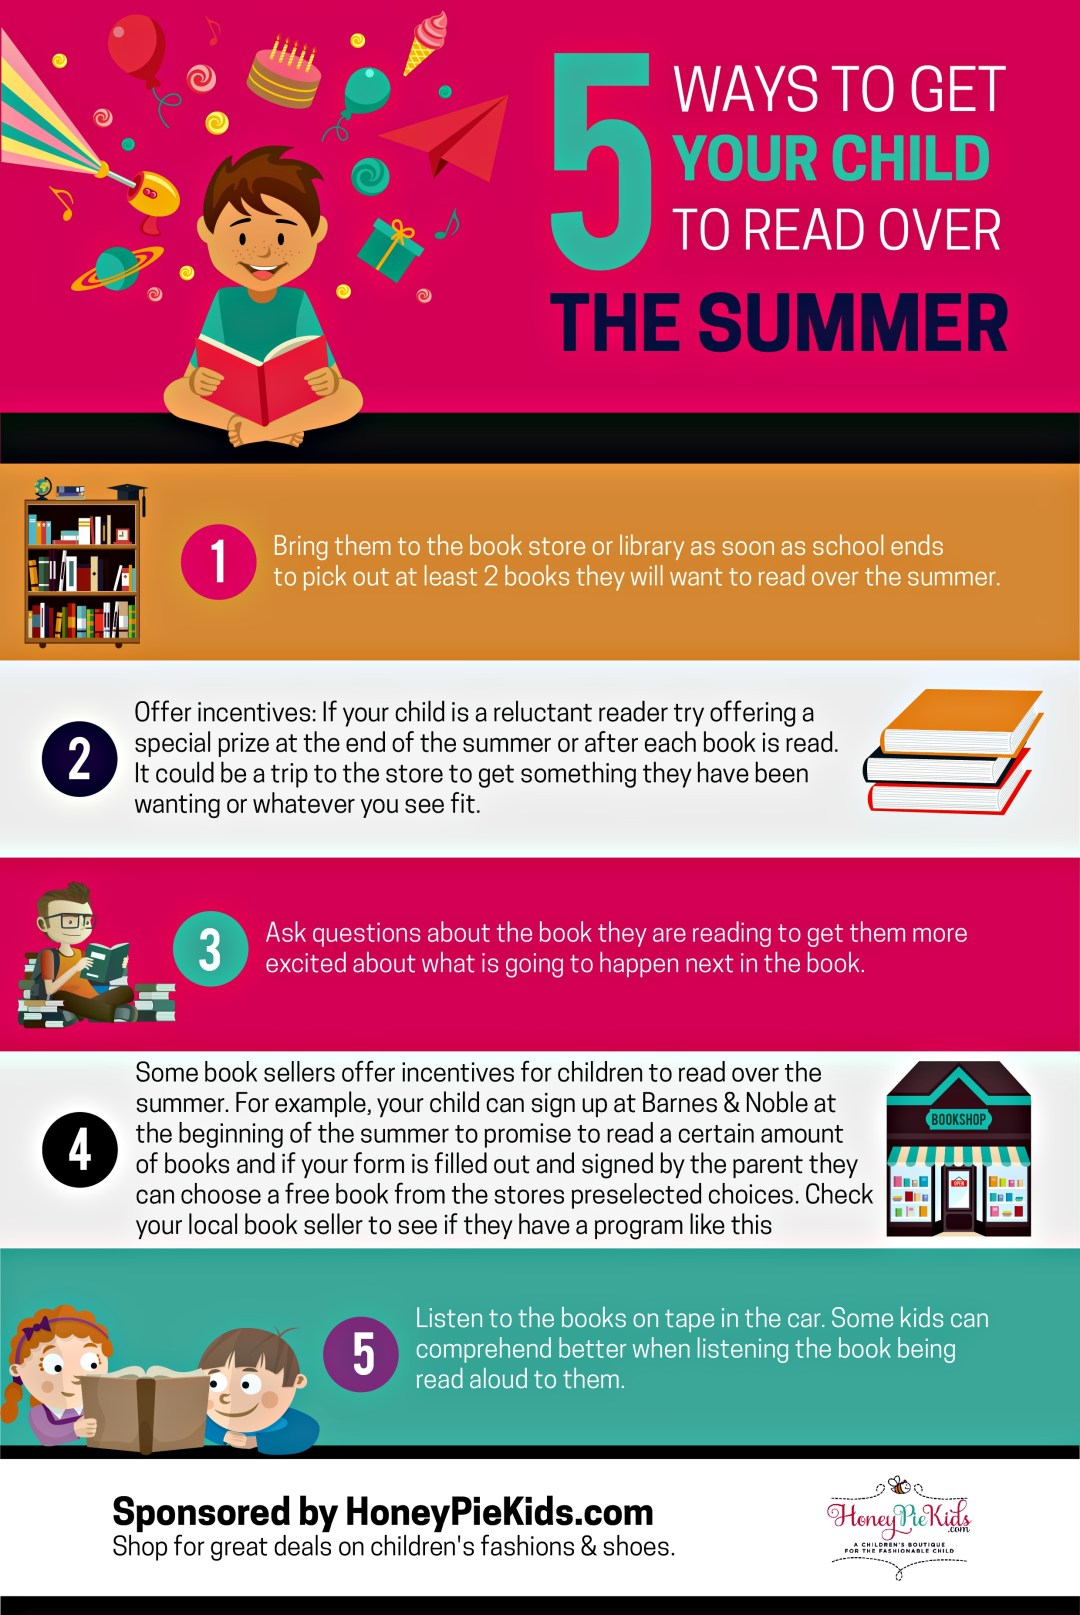 adjusted 5_ways_to_get_your_child_to_read_over_the_summer01-2